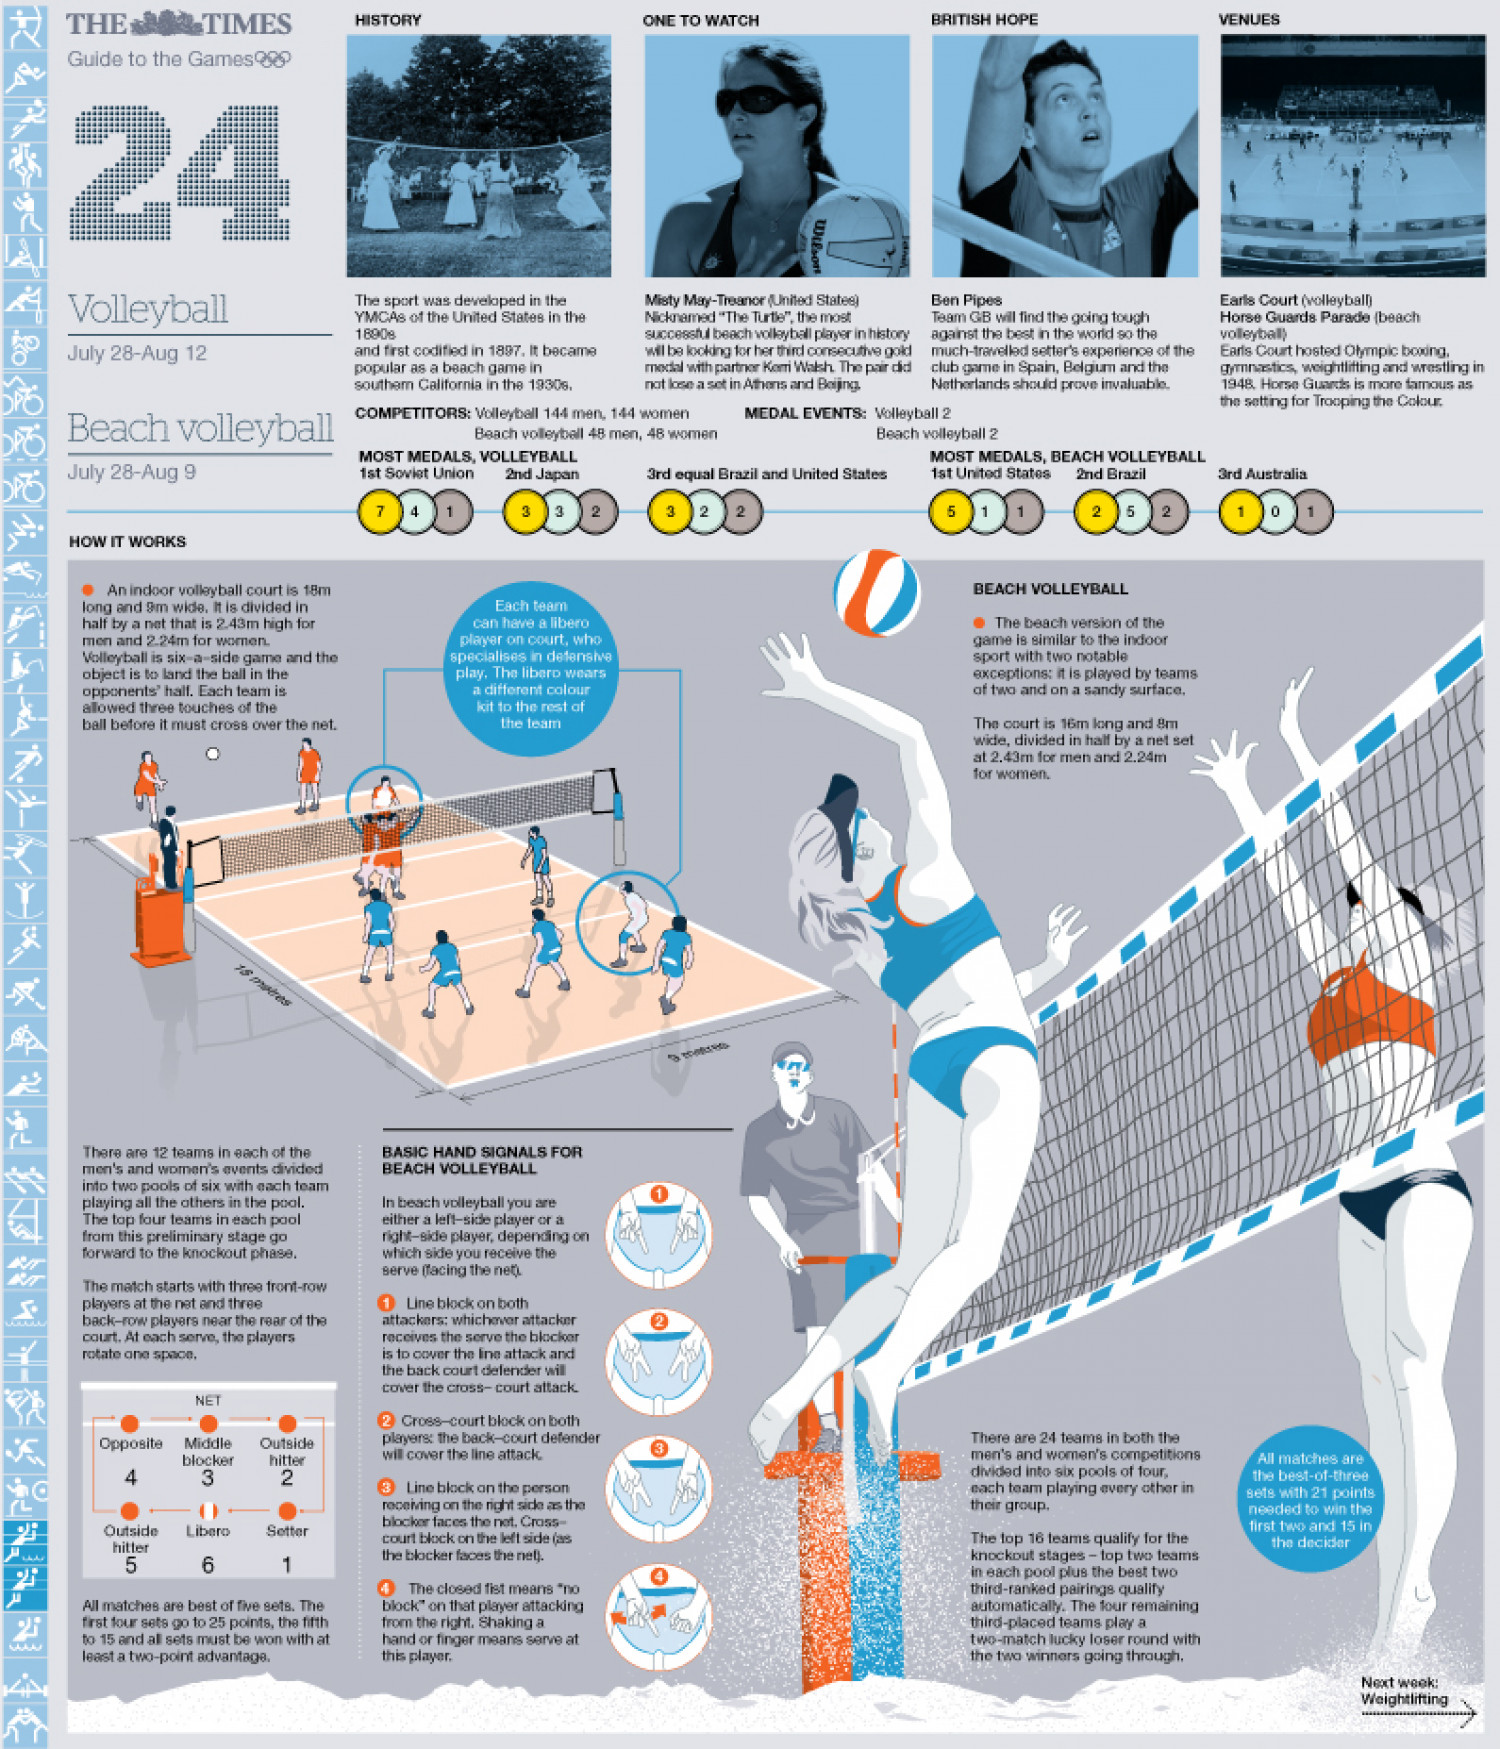 Beach Volleyball Graphics Olympic beach volleyball guide